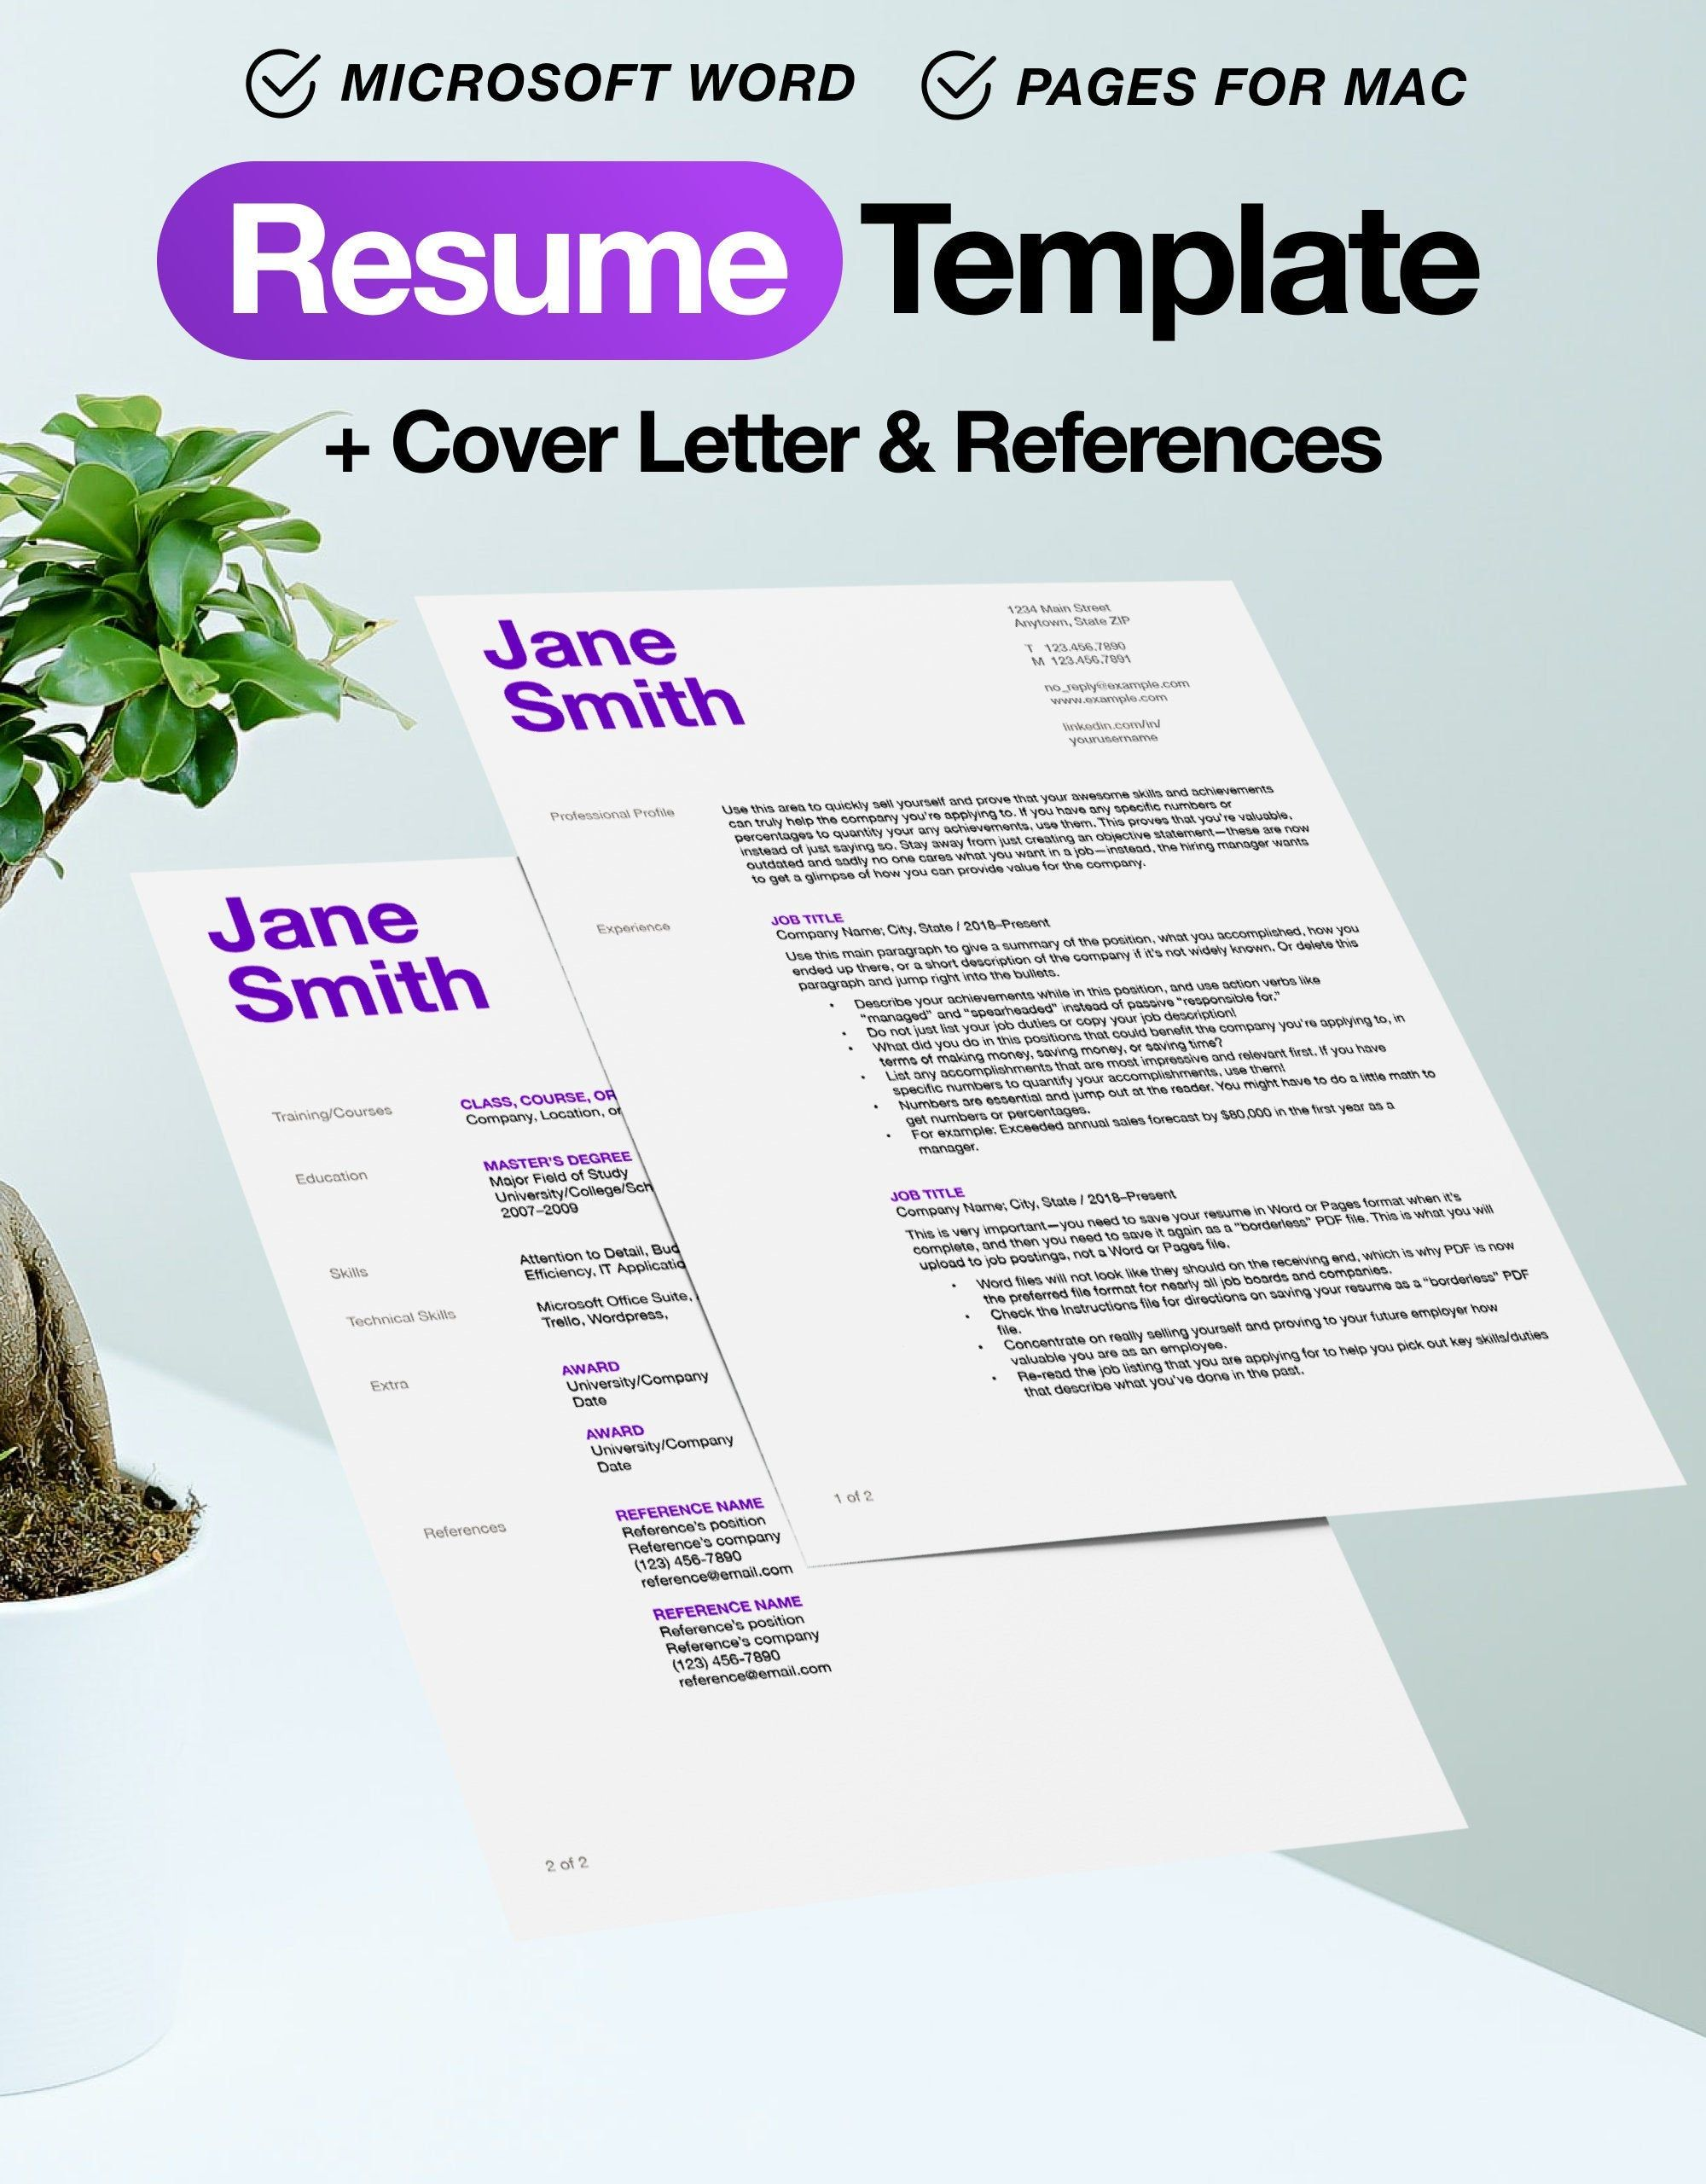 Resume Template with Cover Letter and References for Word